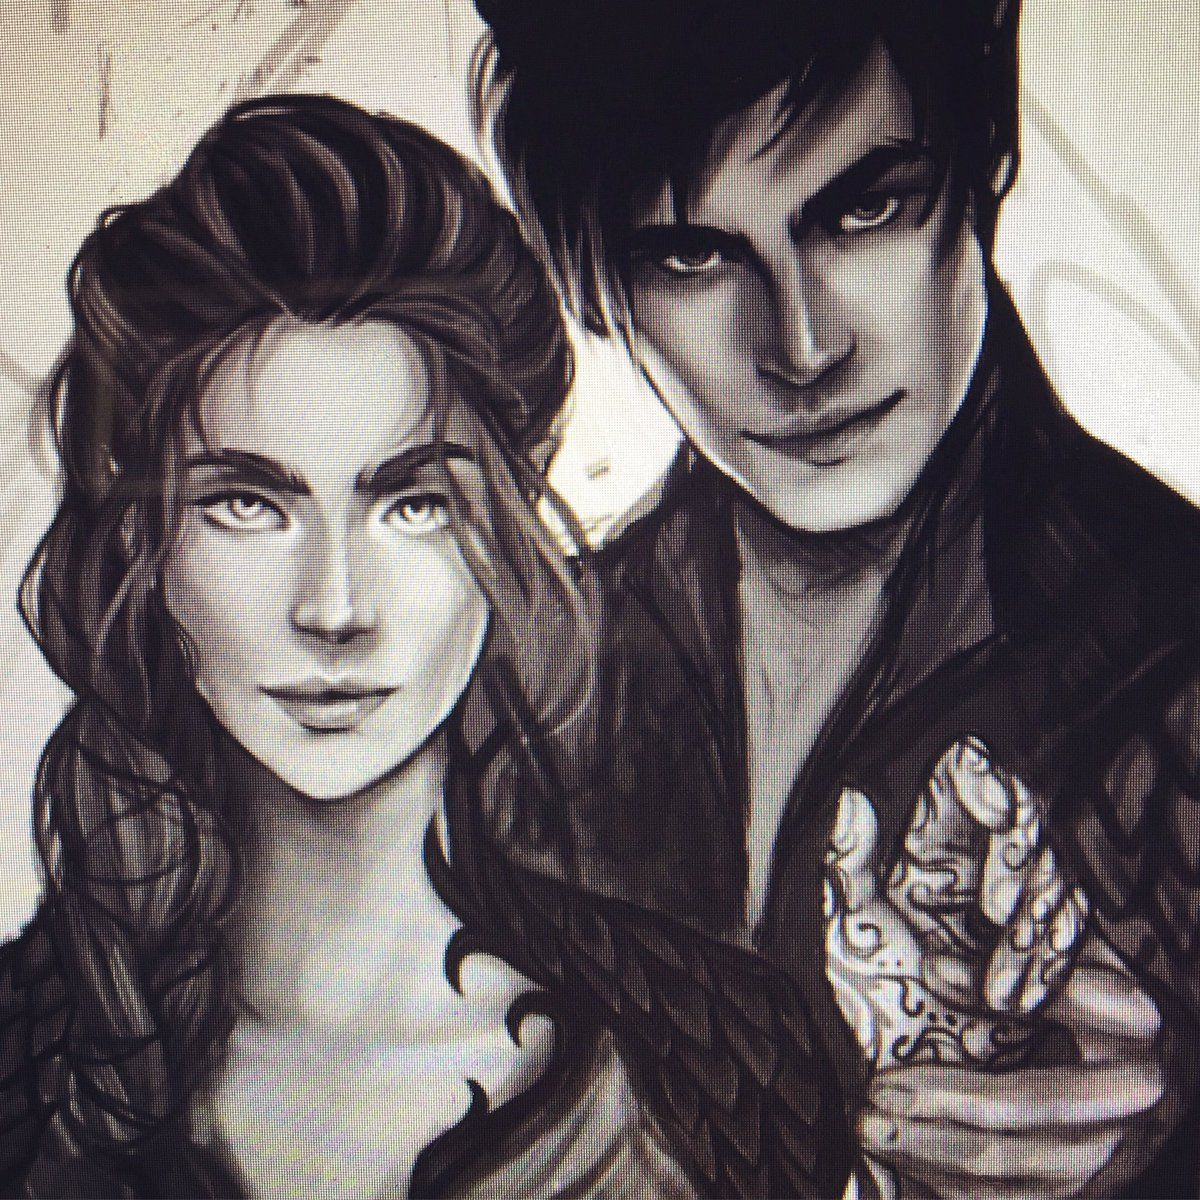 Rhys And Feyre A Court Of Thorns And Roses And A Court Of Mist